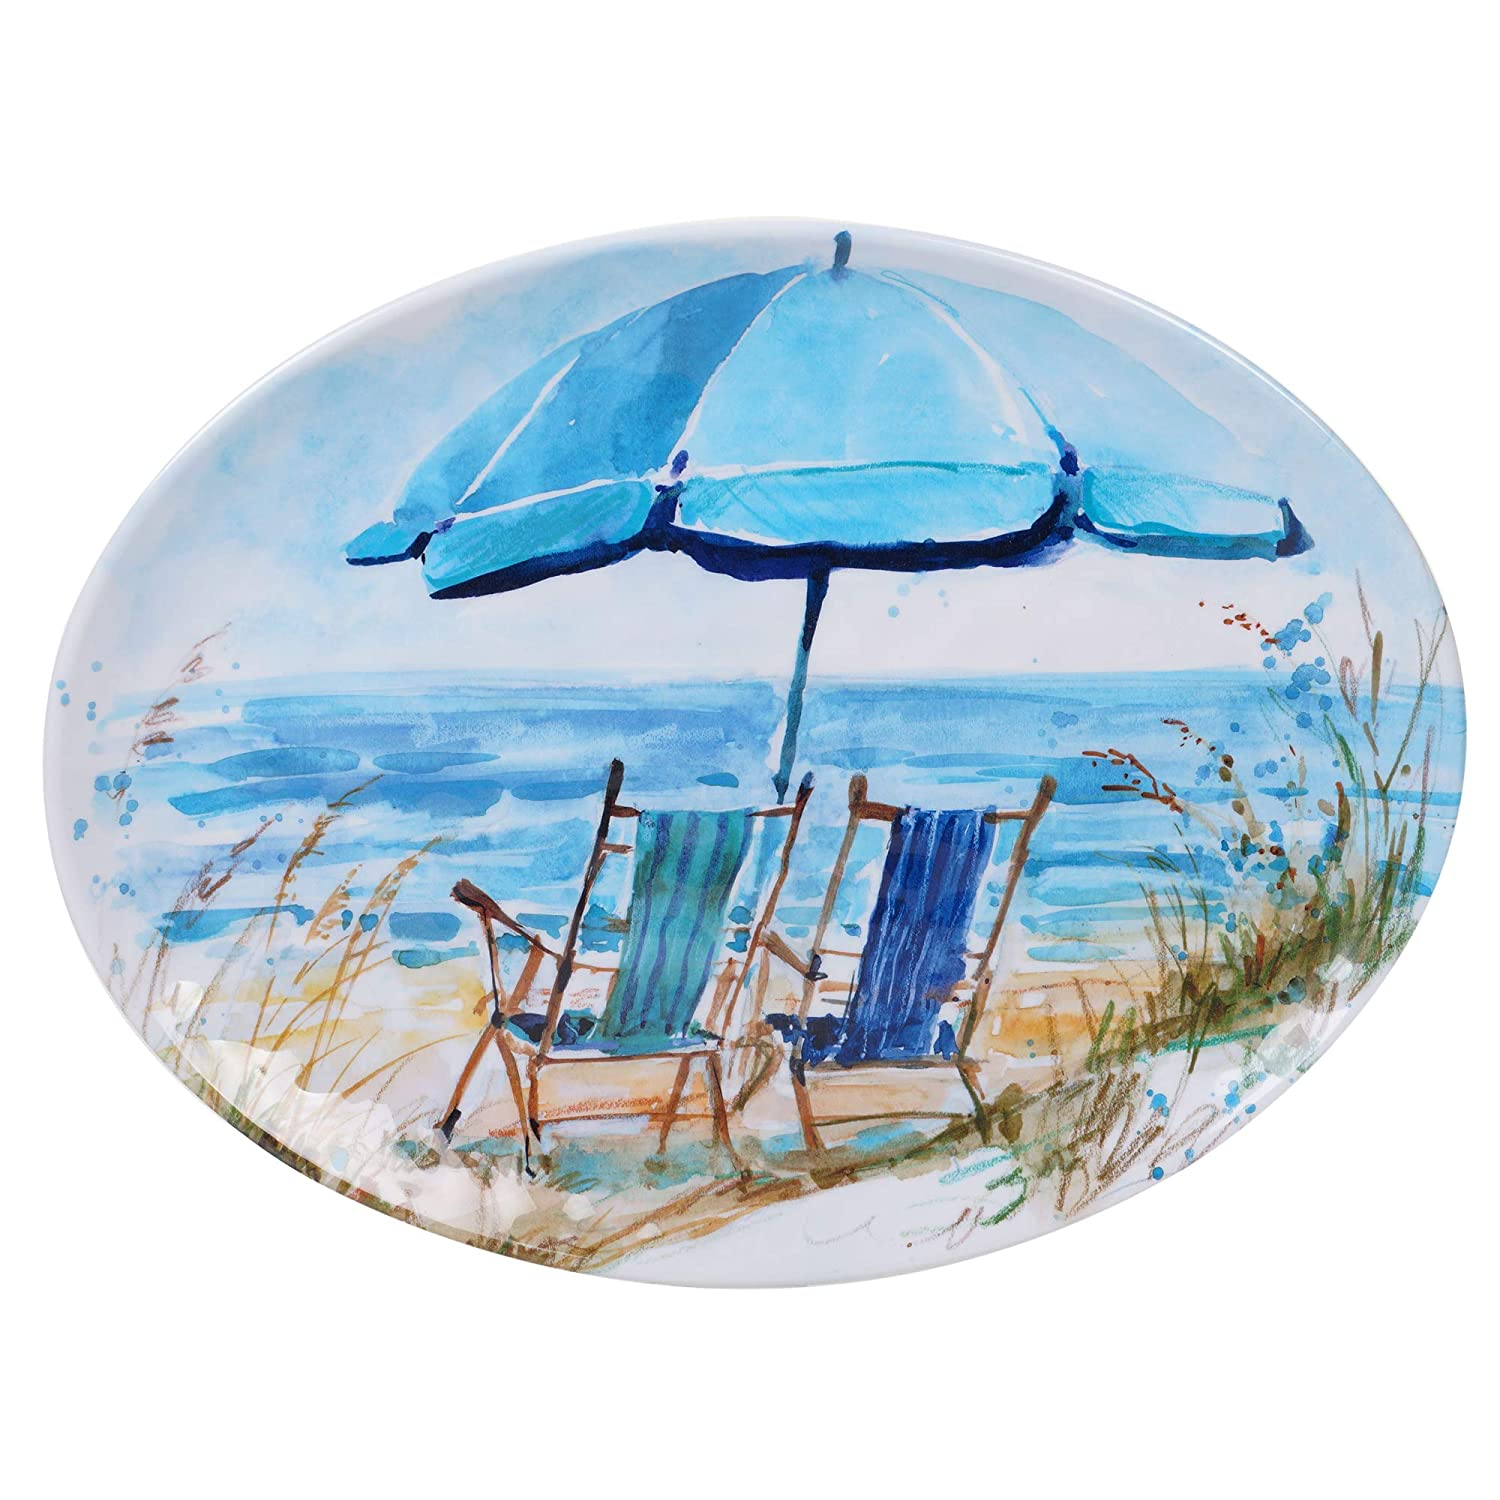 Certified International 27405 Ocean View Oval Platter 18' x 13.5' Servware, Accessories,Hostess Serving, Multicolor